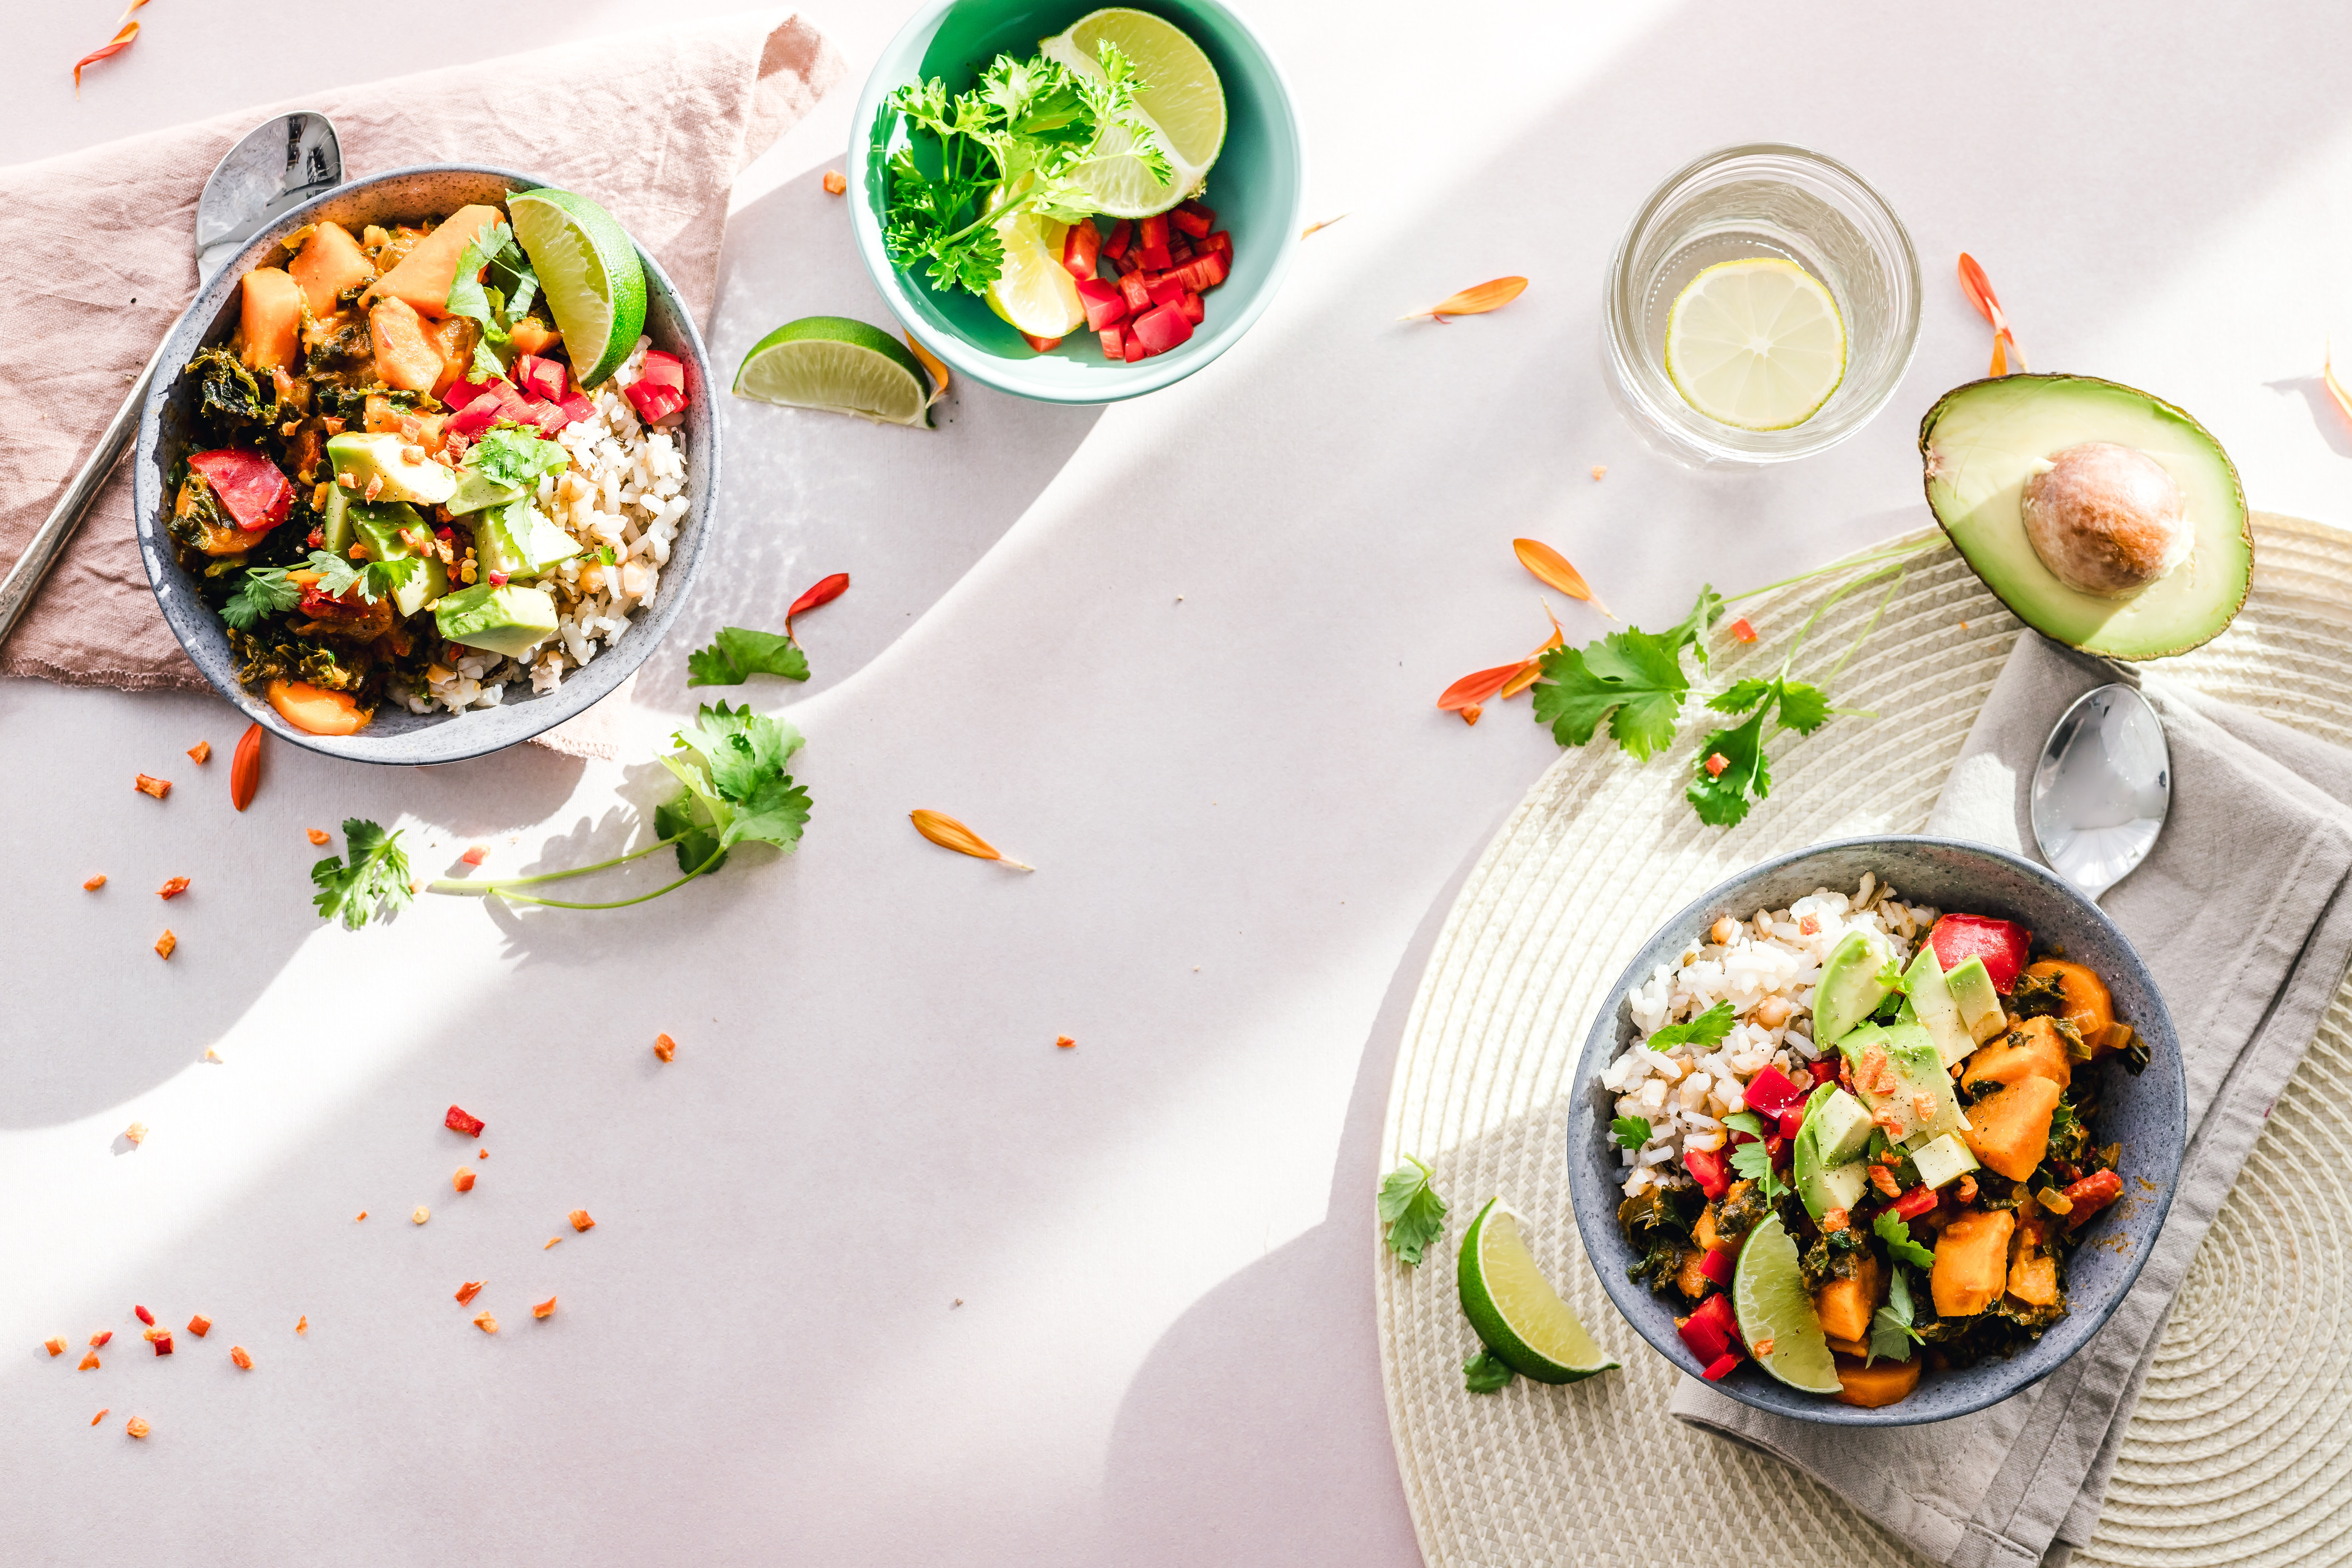 Top Best Healthy Meal Delivery Services In The UK